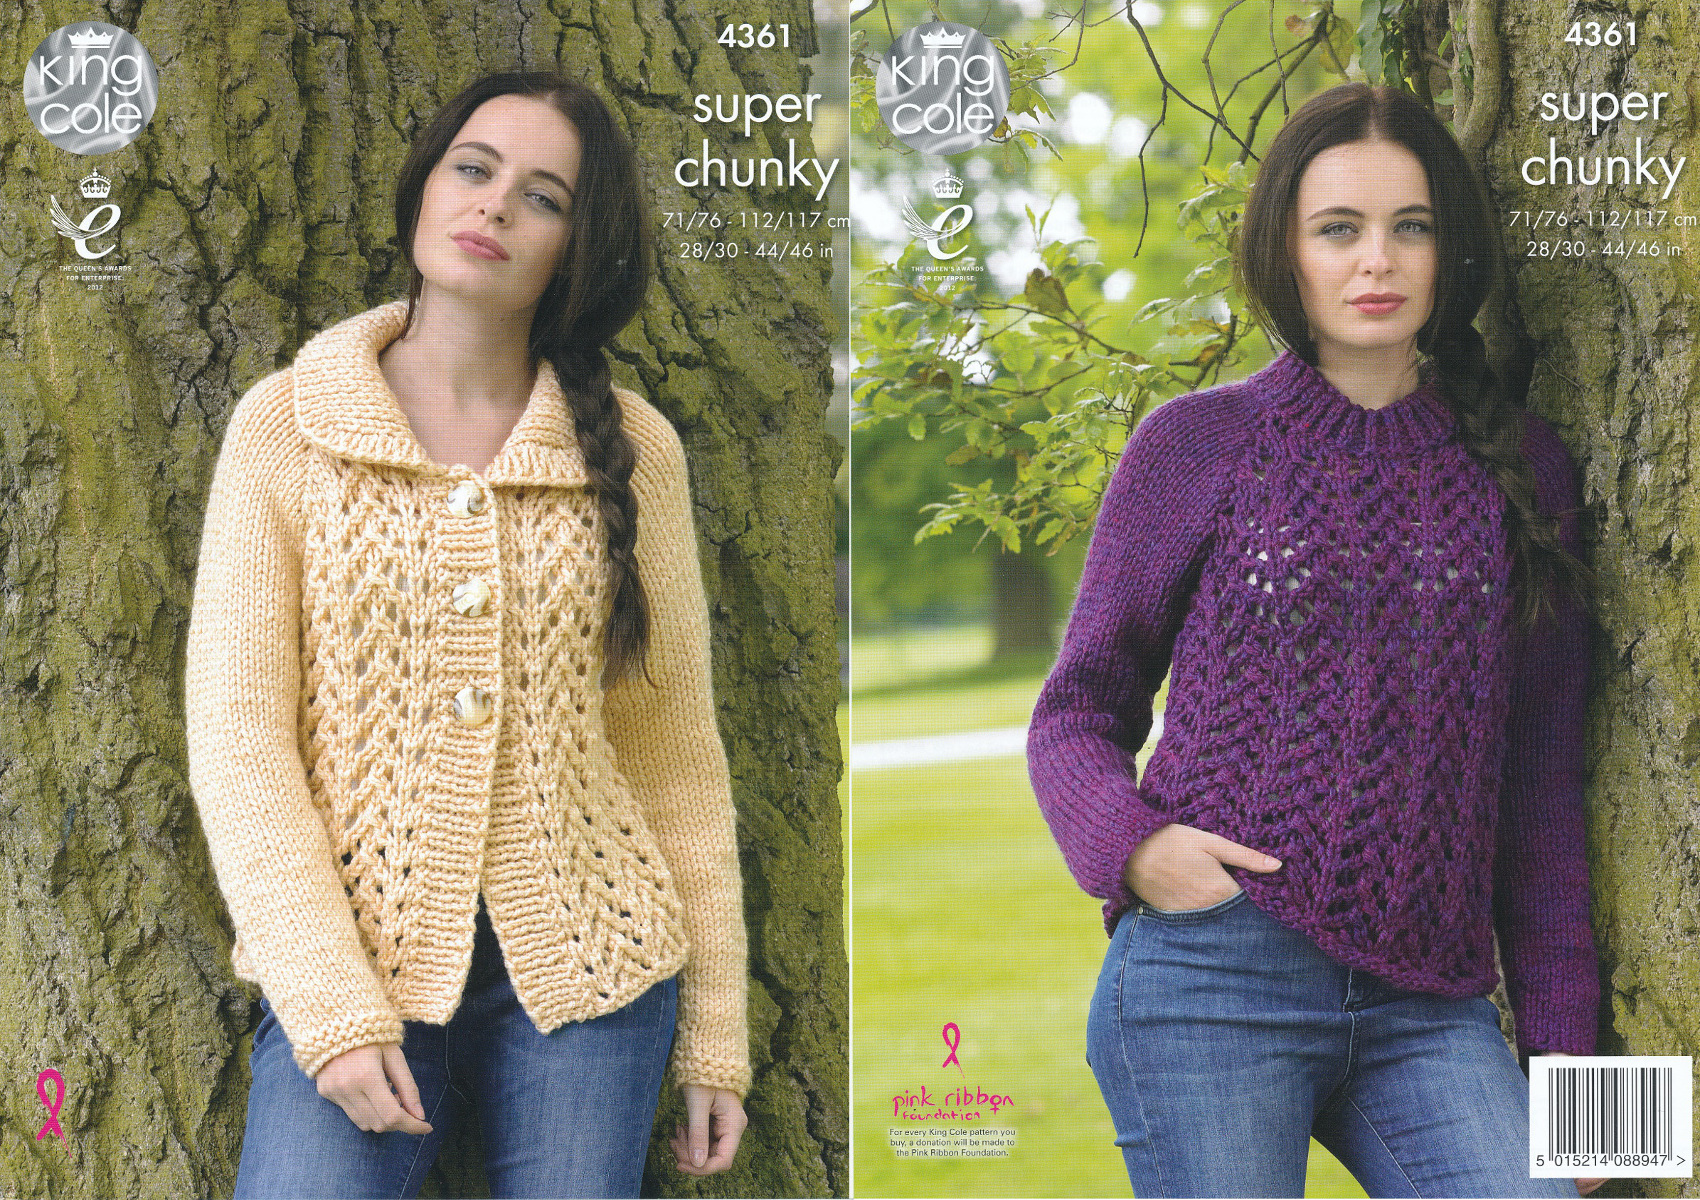 6dcca04f4 Daftar Harga King Cole Womens Knitting Pattern Lace Sweater Termurah ...